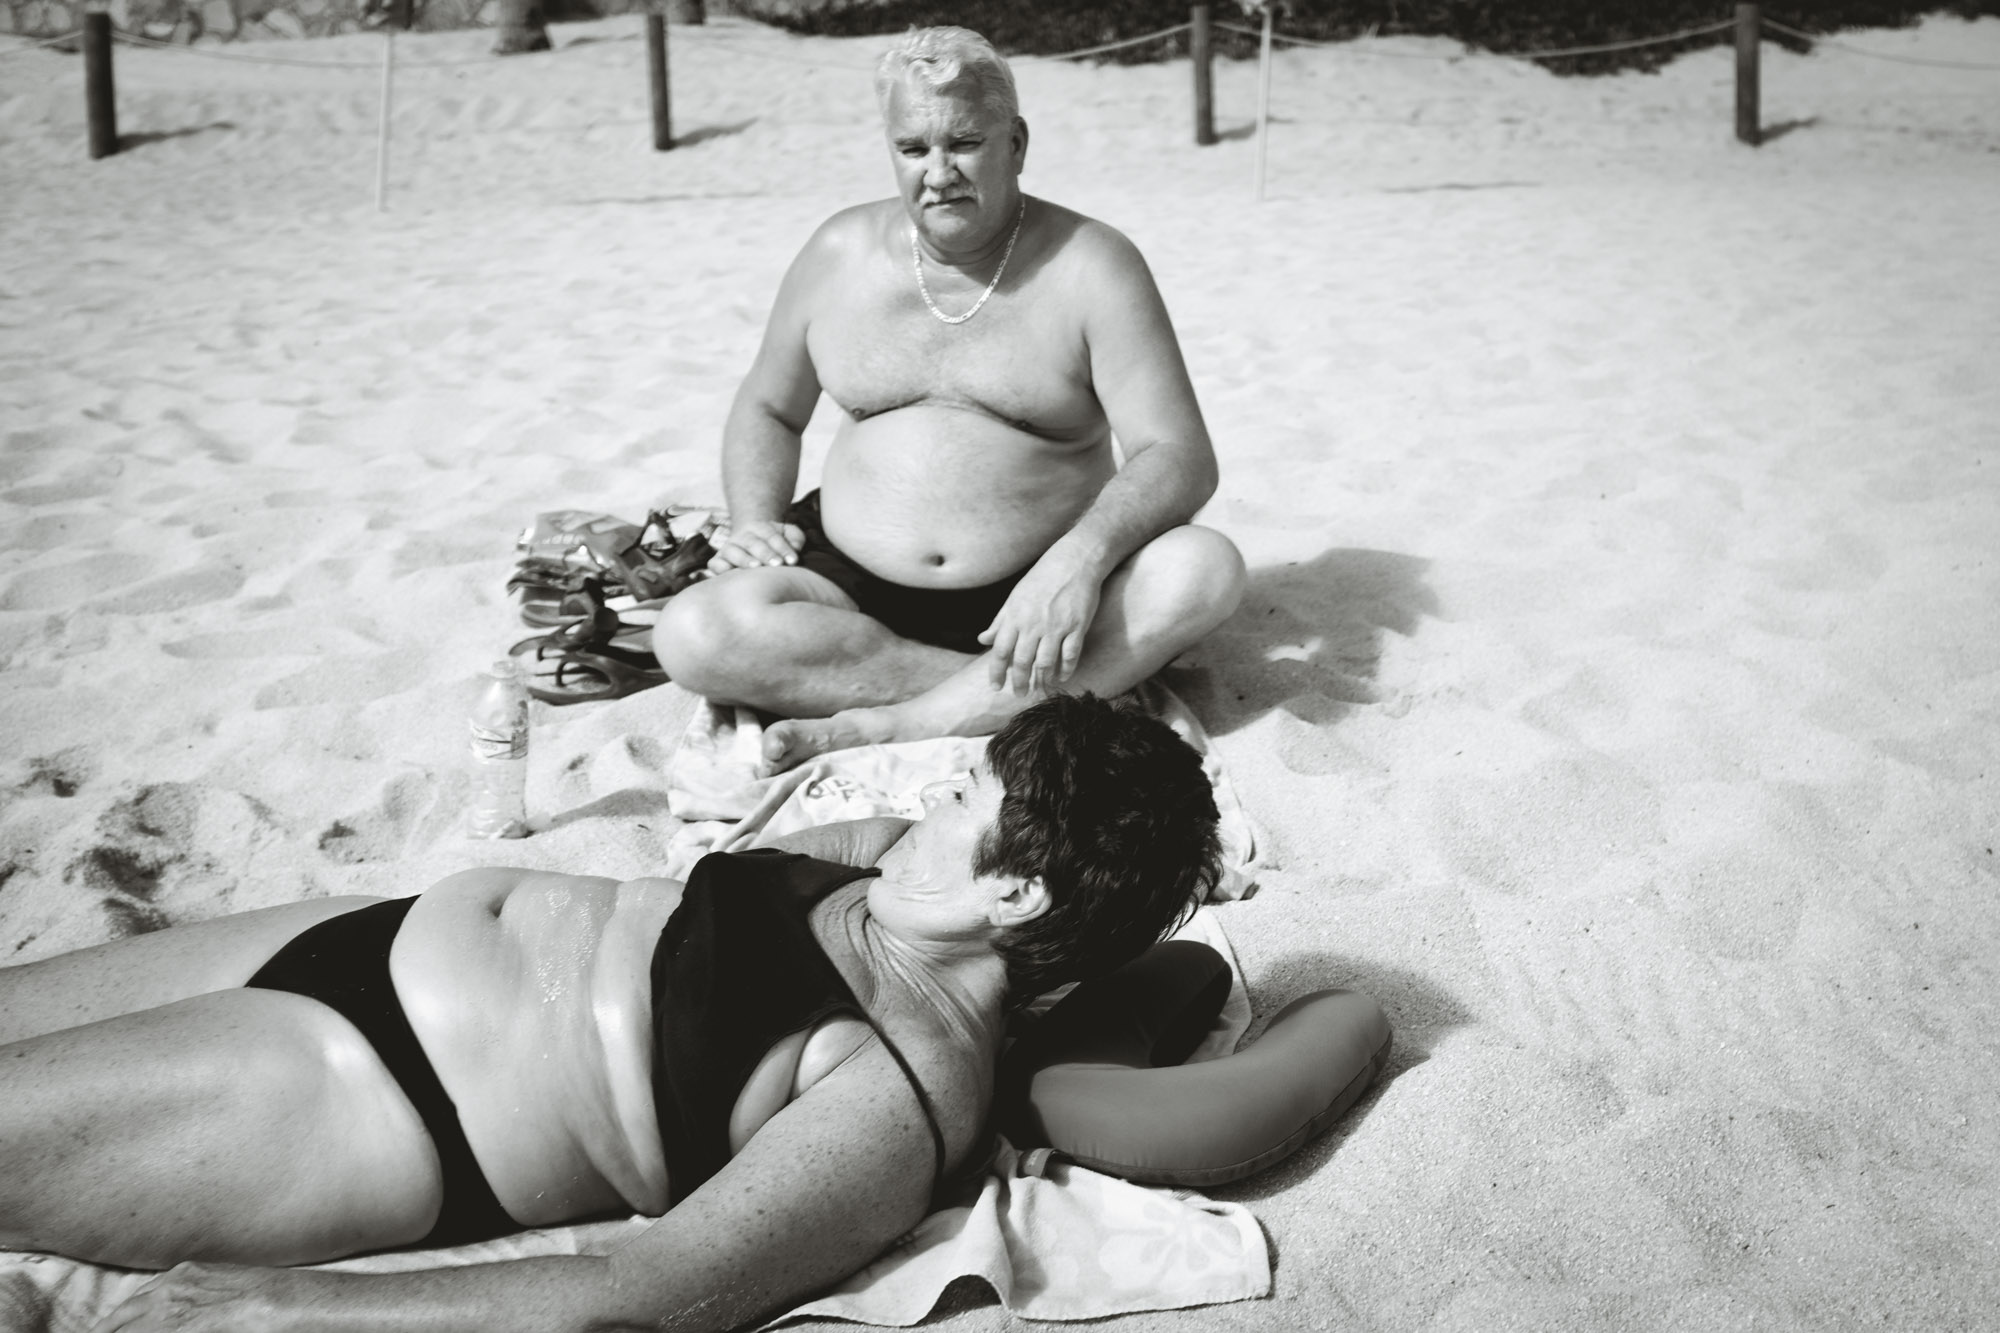 An older couple lounging on the beach in Cabo San Lucas